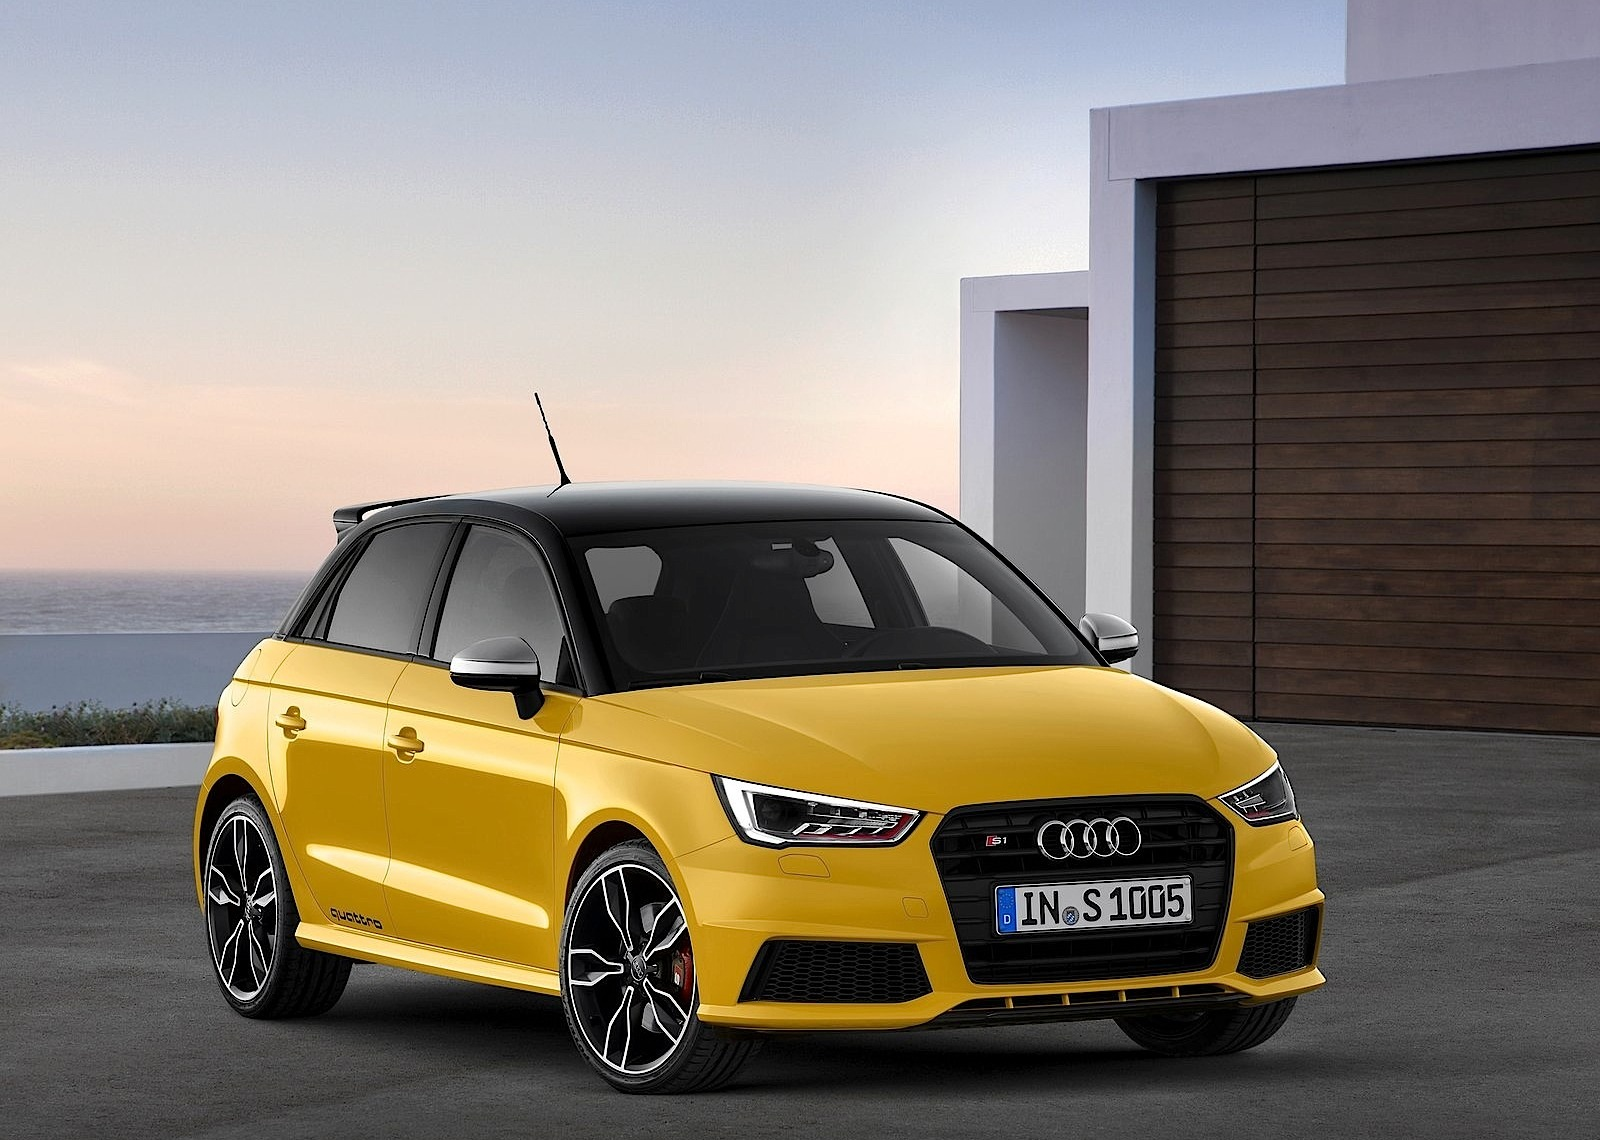 audi s1 sportback specs 2014 2015 2016 2017 2018 autoevolution. Black Bedroom Furniture Sets. Home Design Ideas